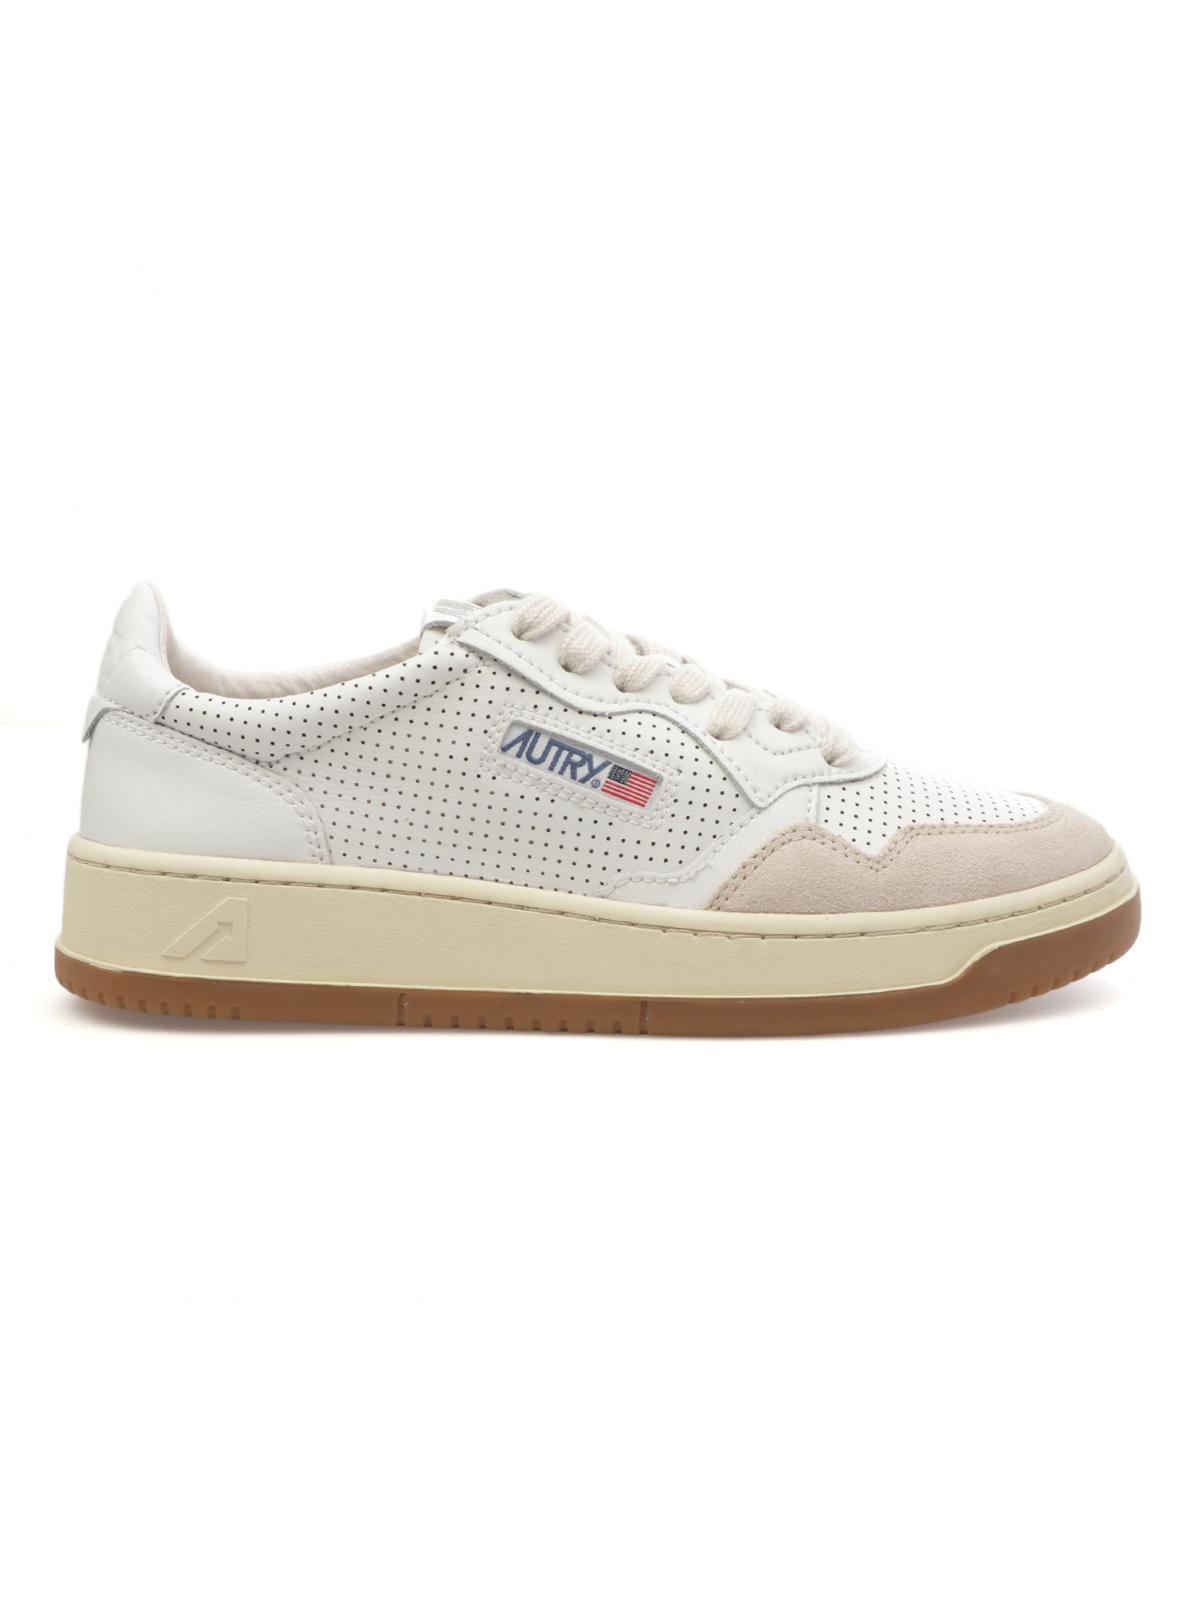 Picture of AUTRY | Men's AULM Low Leather Sneakers